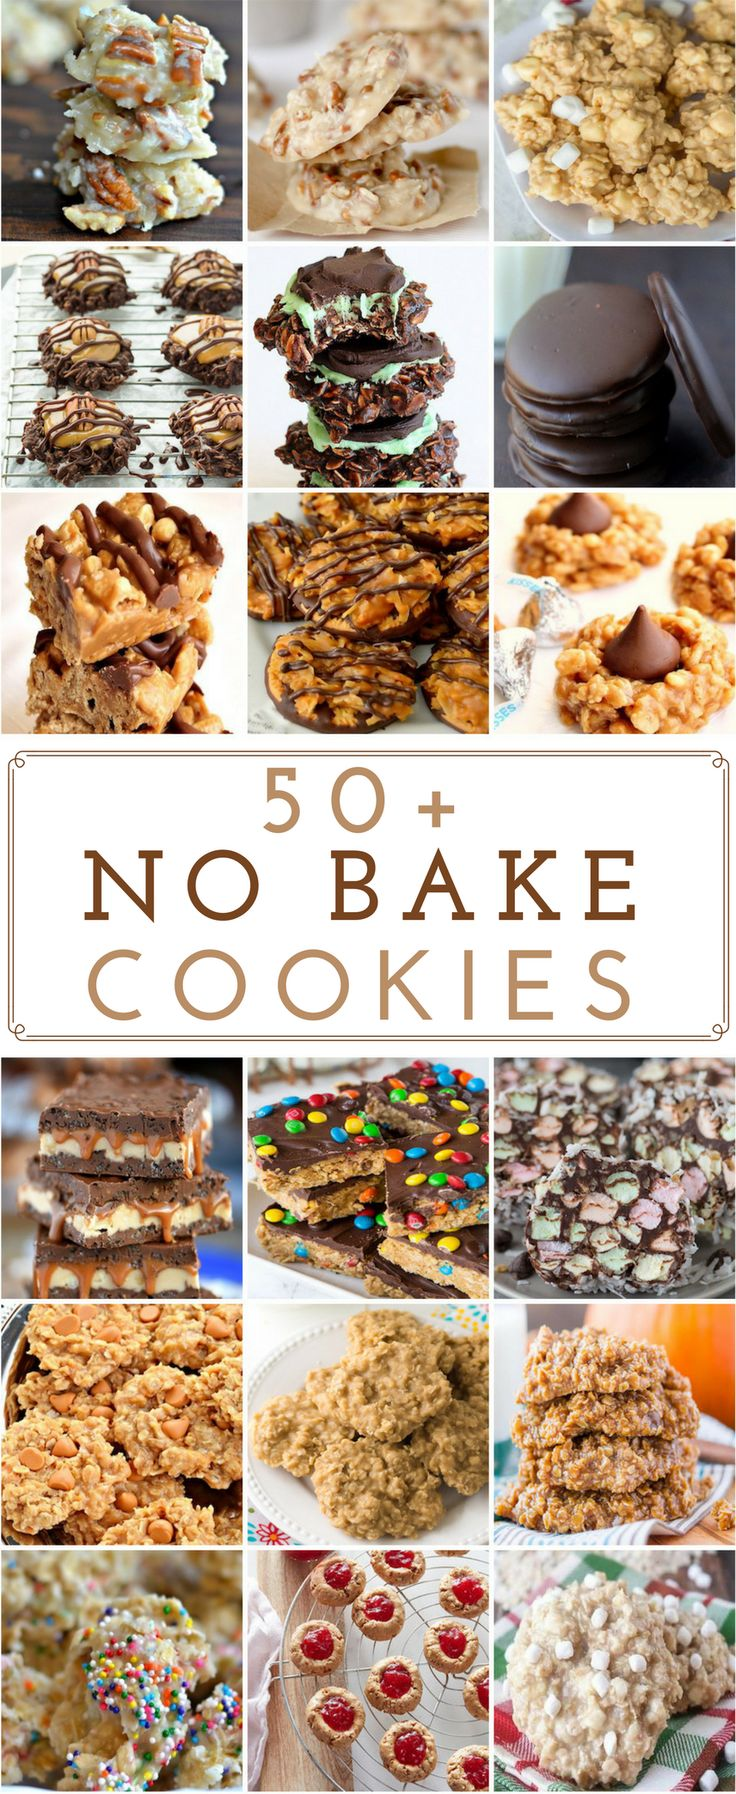 Shares I love no bake cookies because they are cheap, delicious and easy to make. Many of these recipes are under 5 ingredients (most of which you already have in your pantry or fridge like oats, sugar, peanut butter, etc.)  Peanut Butter No Bake Cookies Peanut Butter Cornflake Cookies from Spend With Pennies Peanut Butter Cookies from Dear …